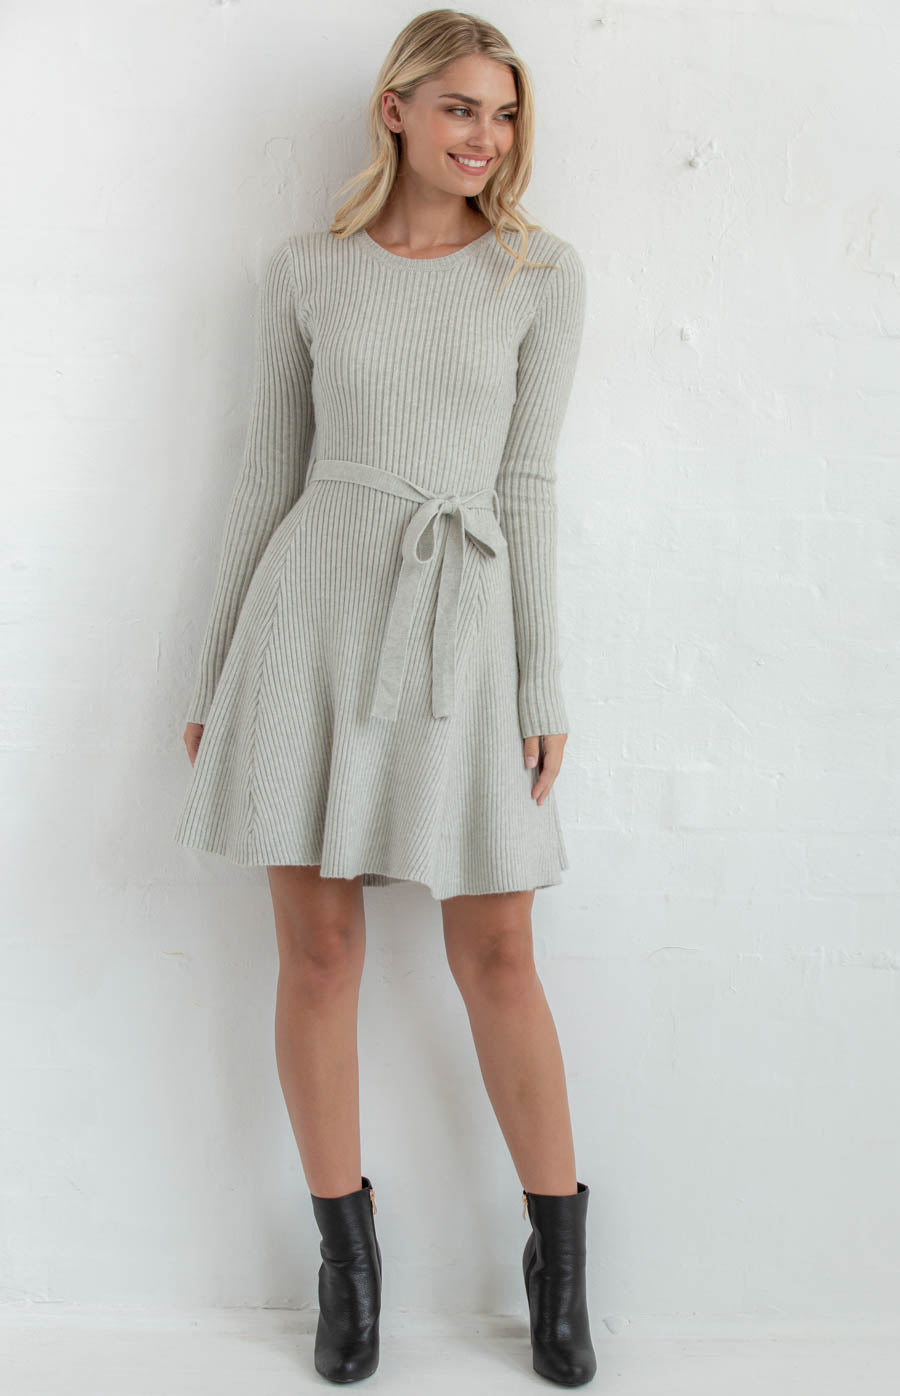 EMILY ROUND NECKLINE KNIT DRESS WITH BELT